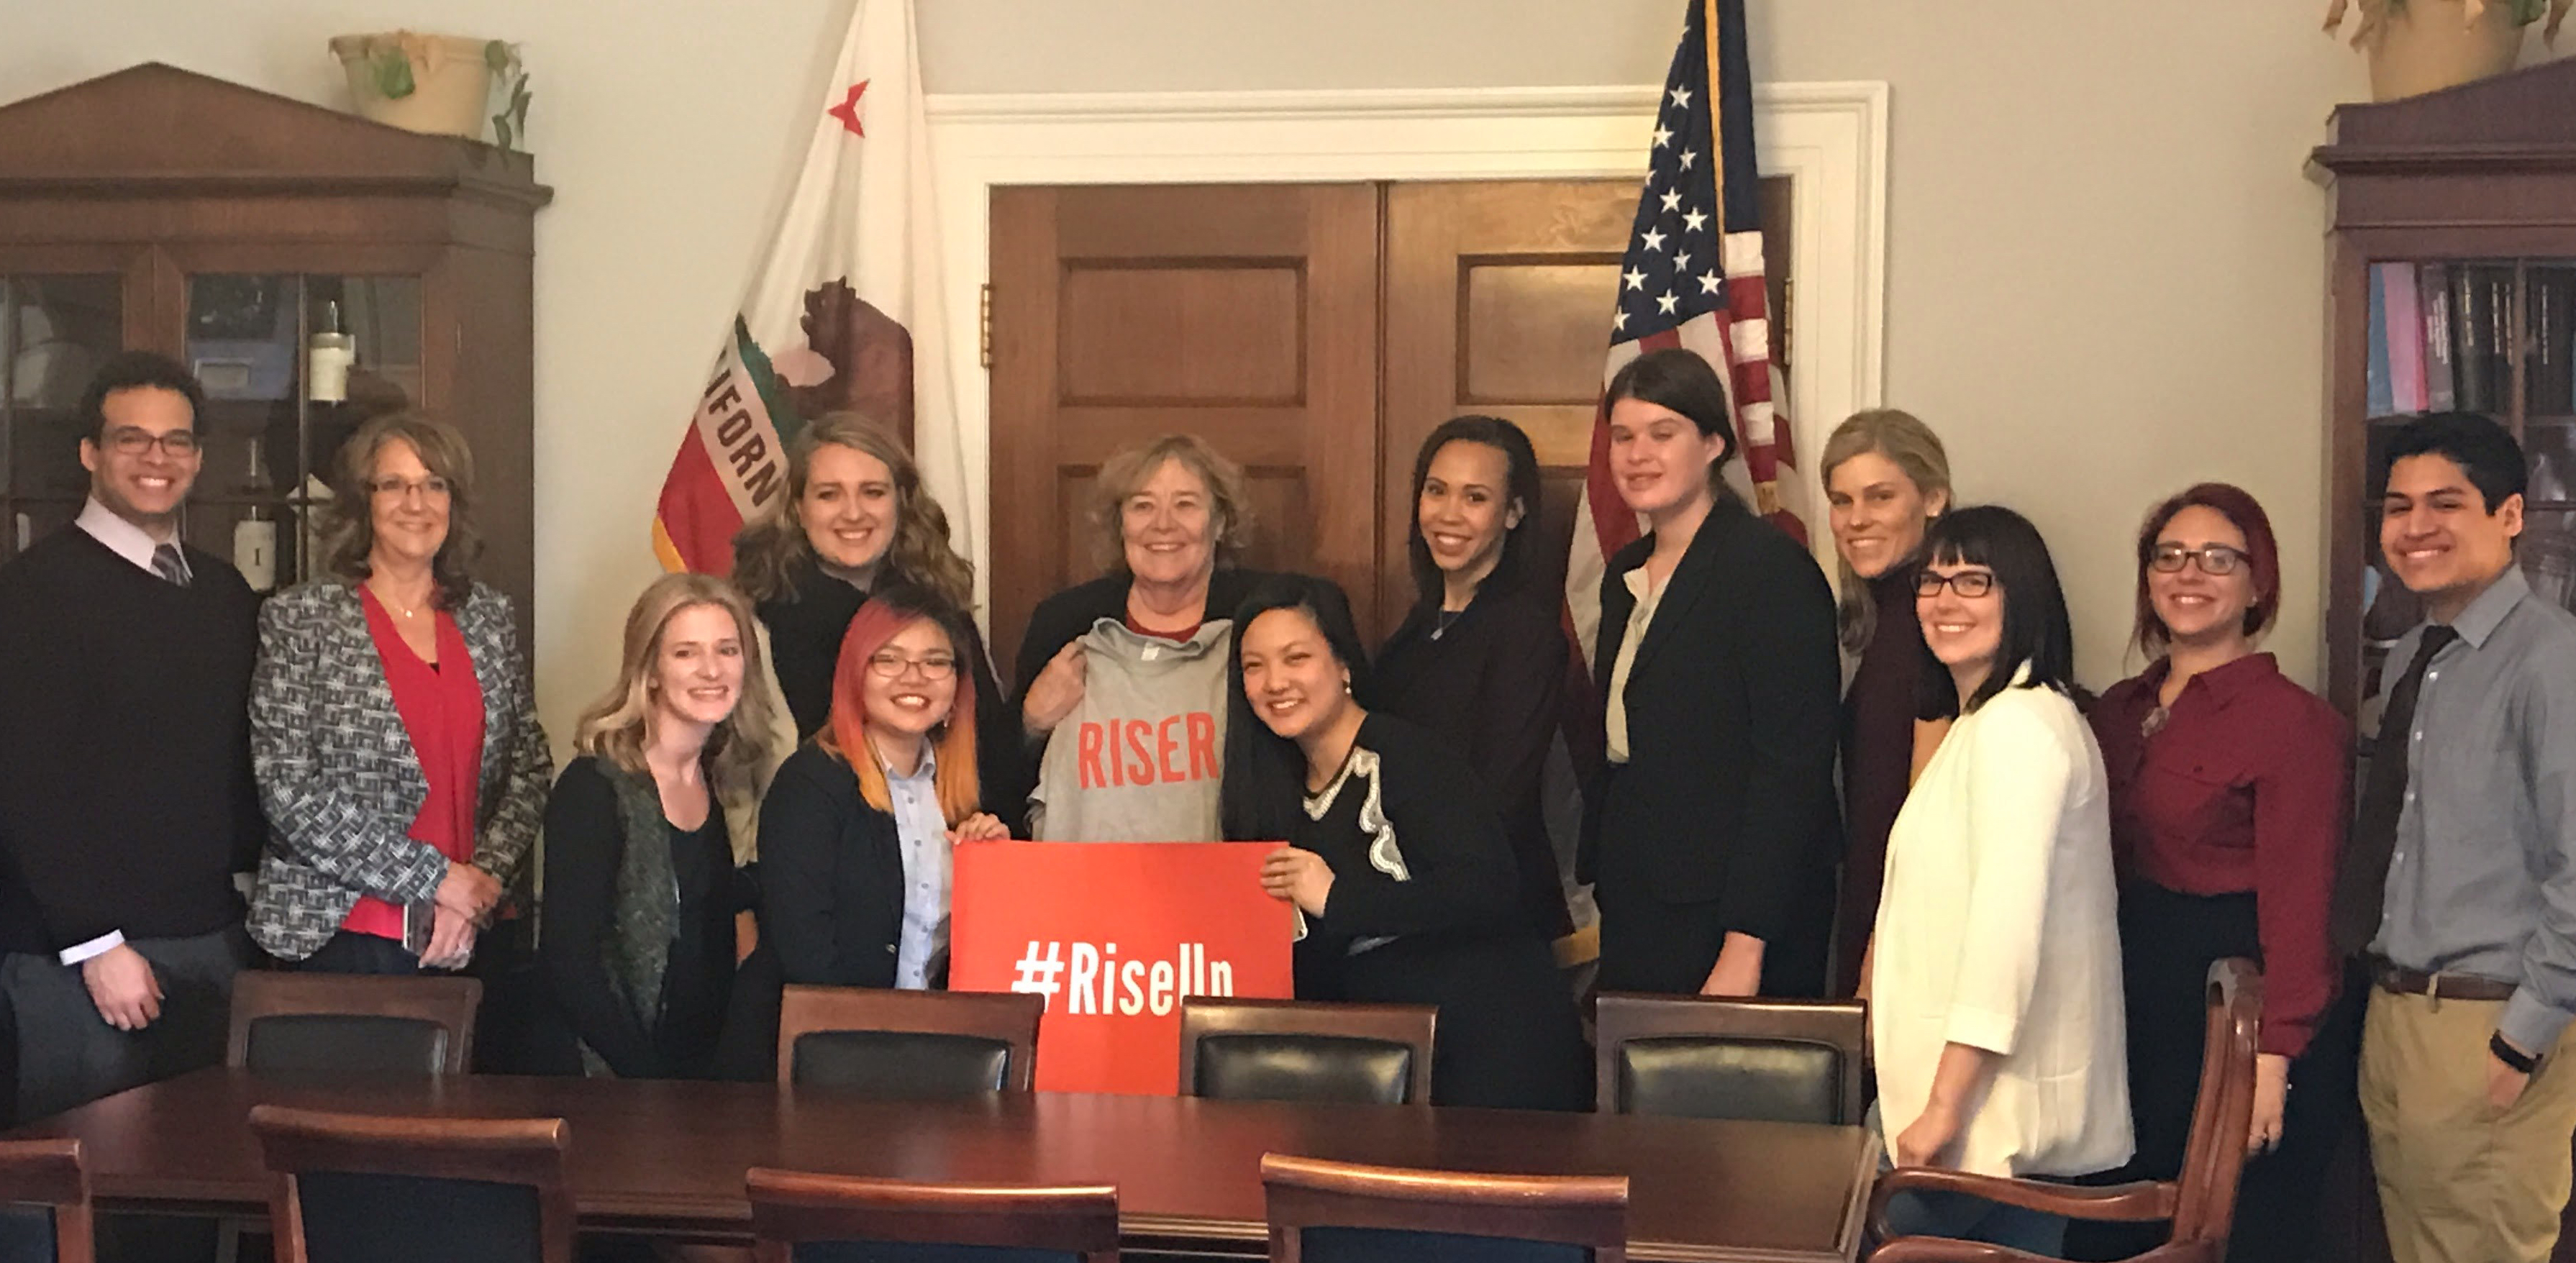 Risers with U.S. Representative Zoe Lofgren (D-CA) on Capitol Hill in Washington, D.C.